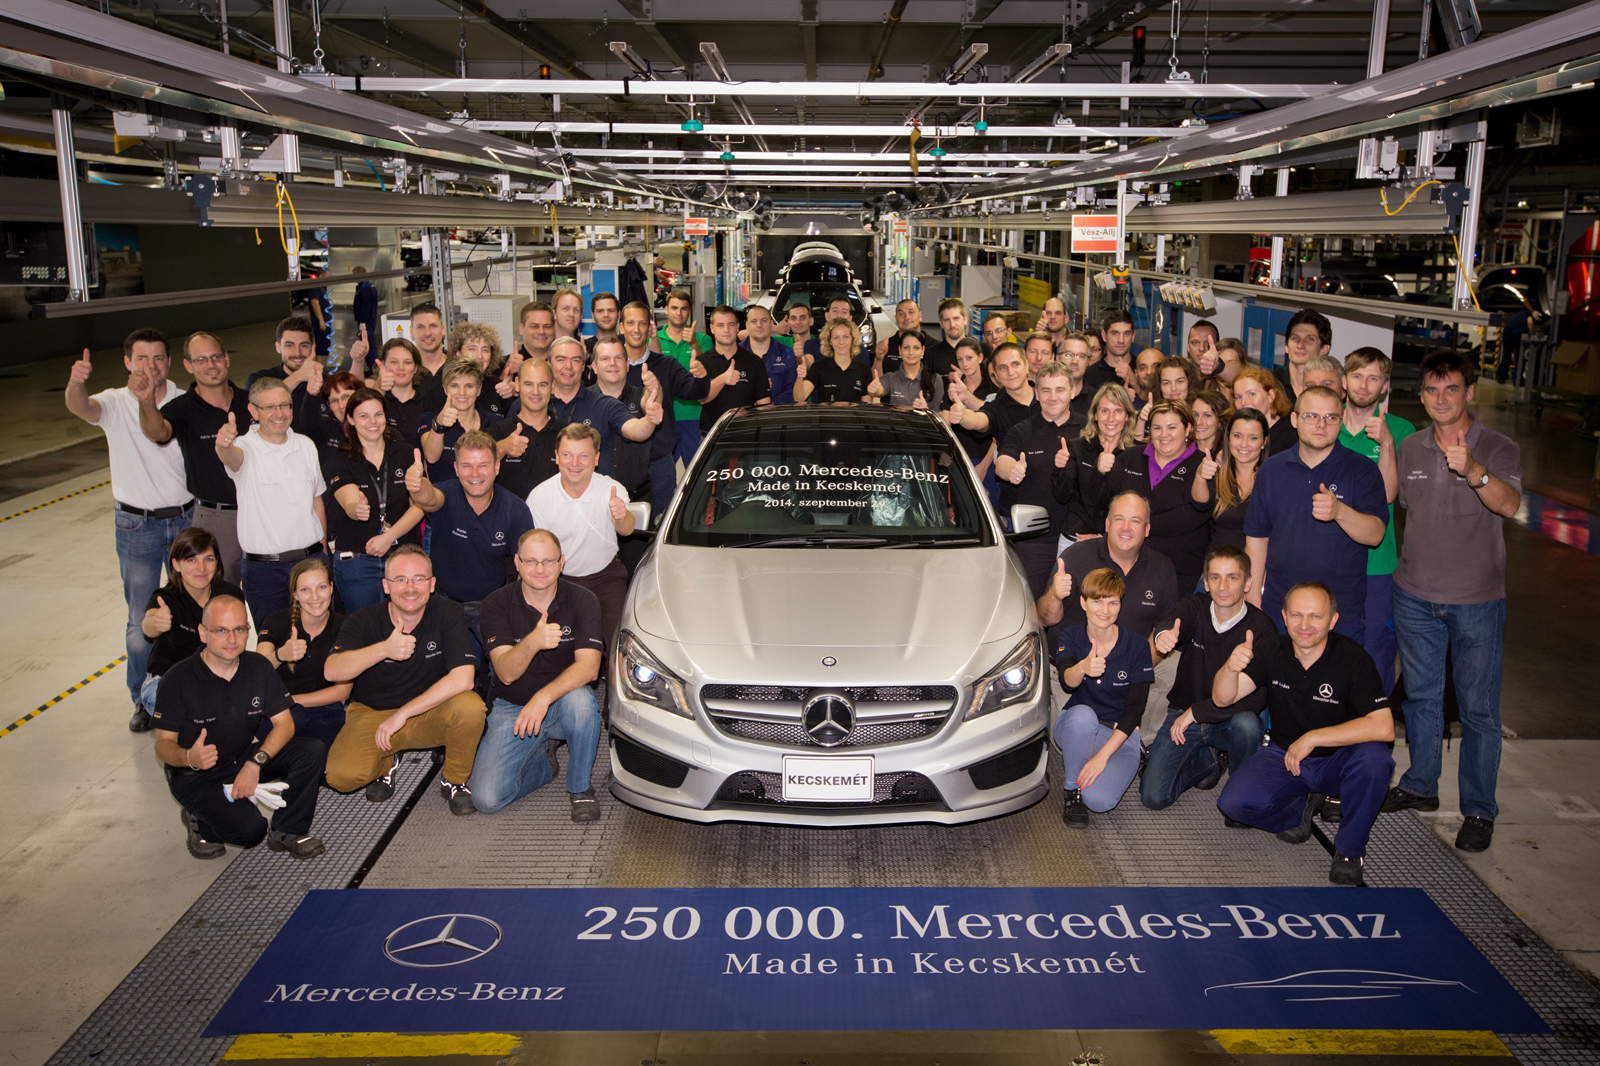 mercedes benz kecskem t factory celerates 250 000th